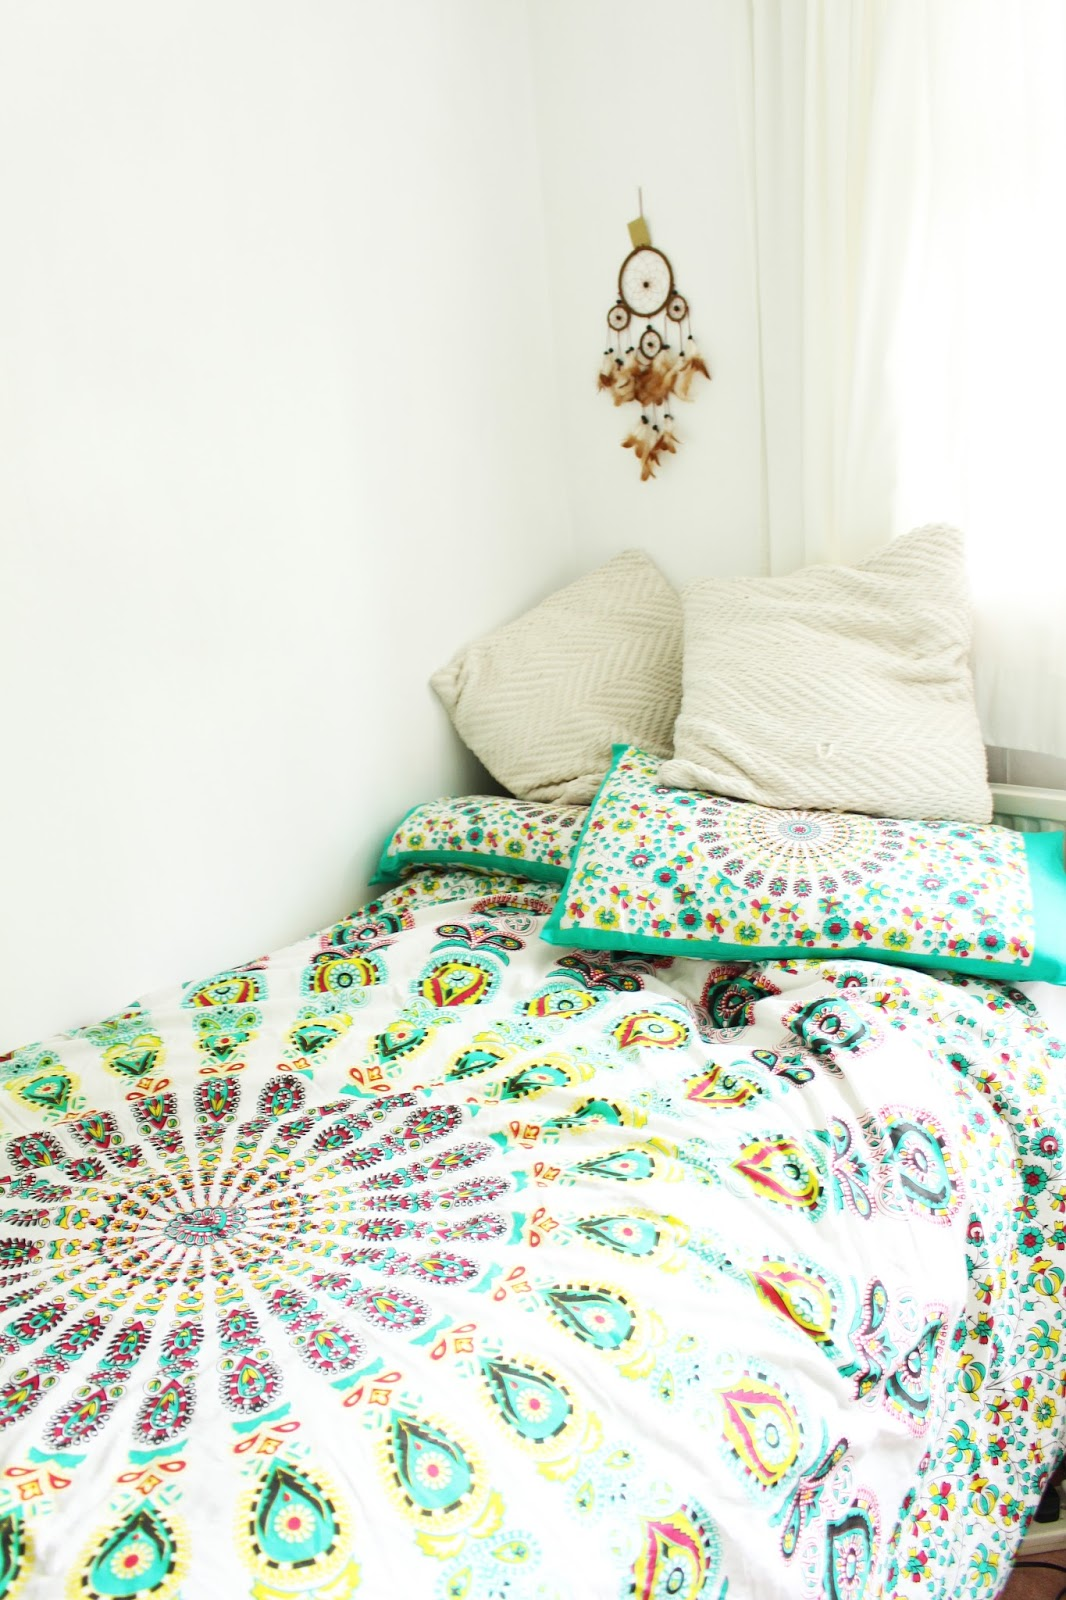 Best places to buy bedding -  And Bedding They Also Are One Of The Best Places To Buy Boho Clothing Which Is What Everyone Needs In Their Lives This Close To Festival Season